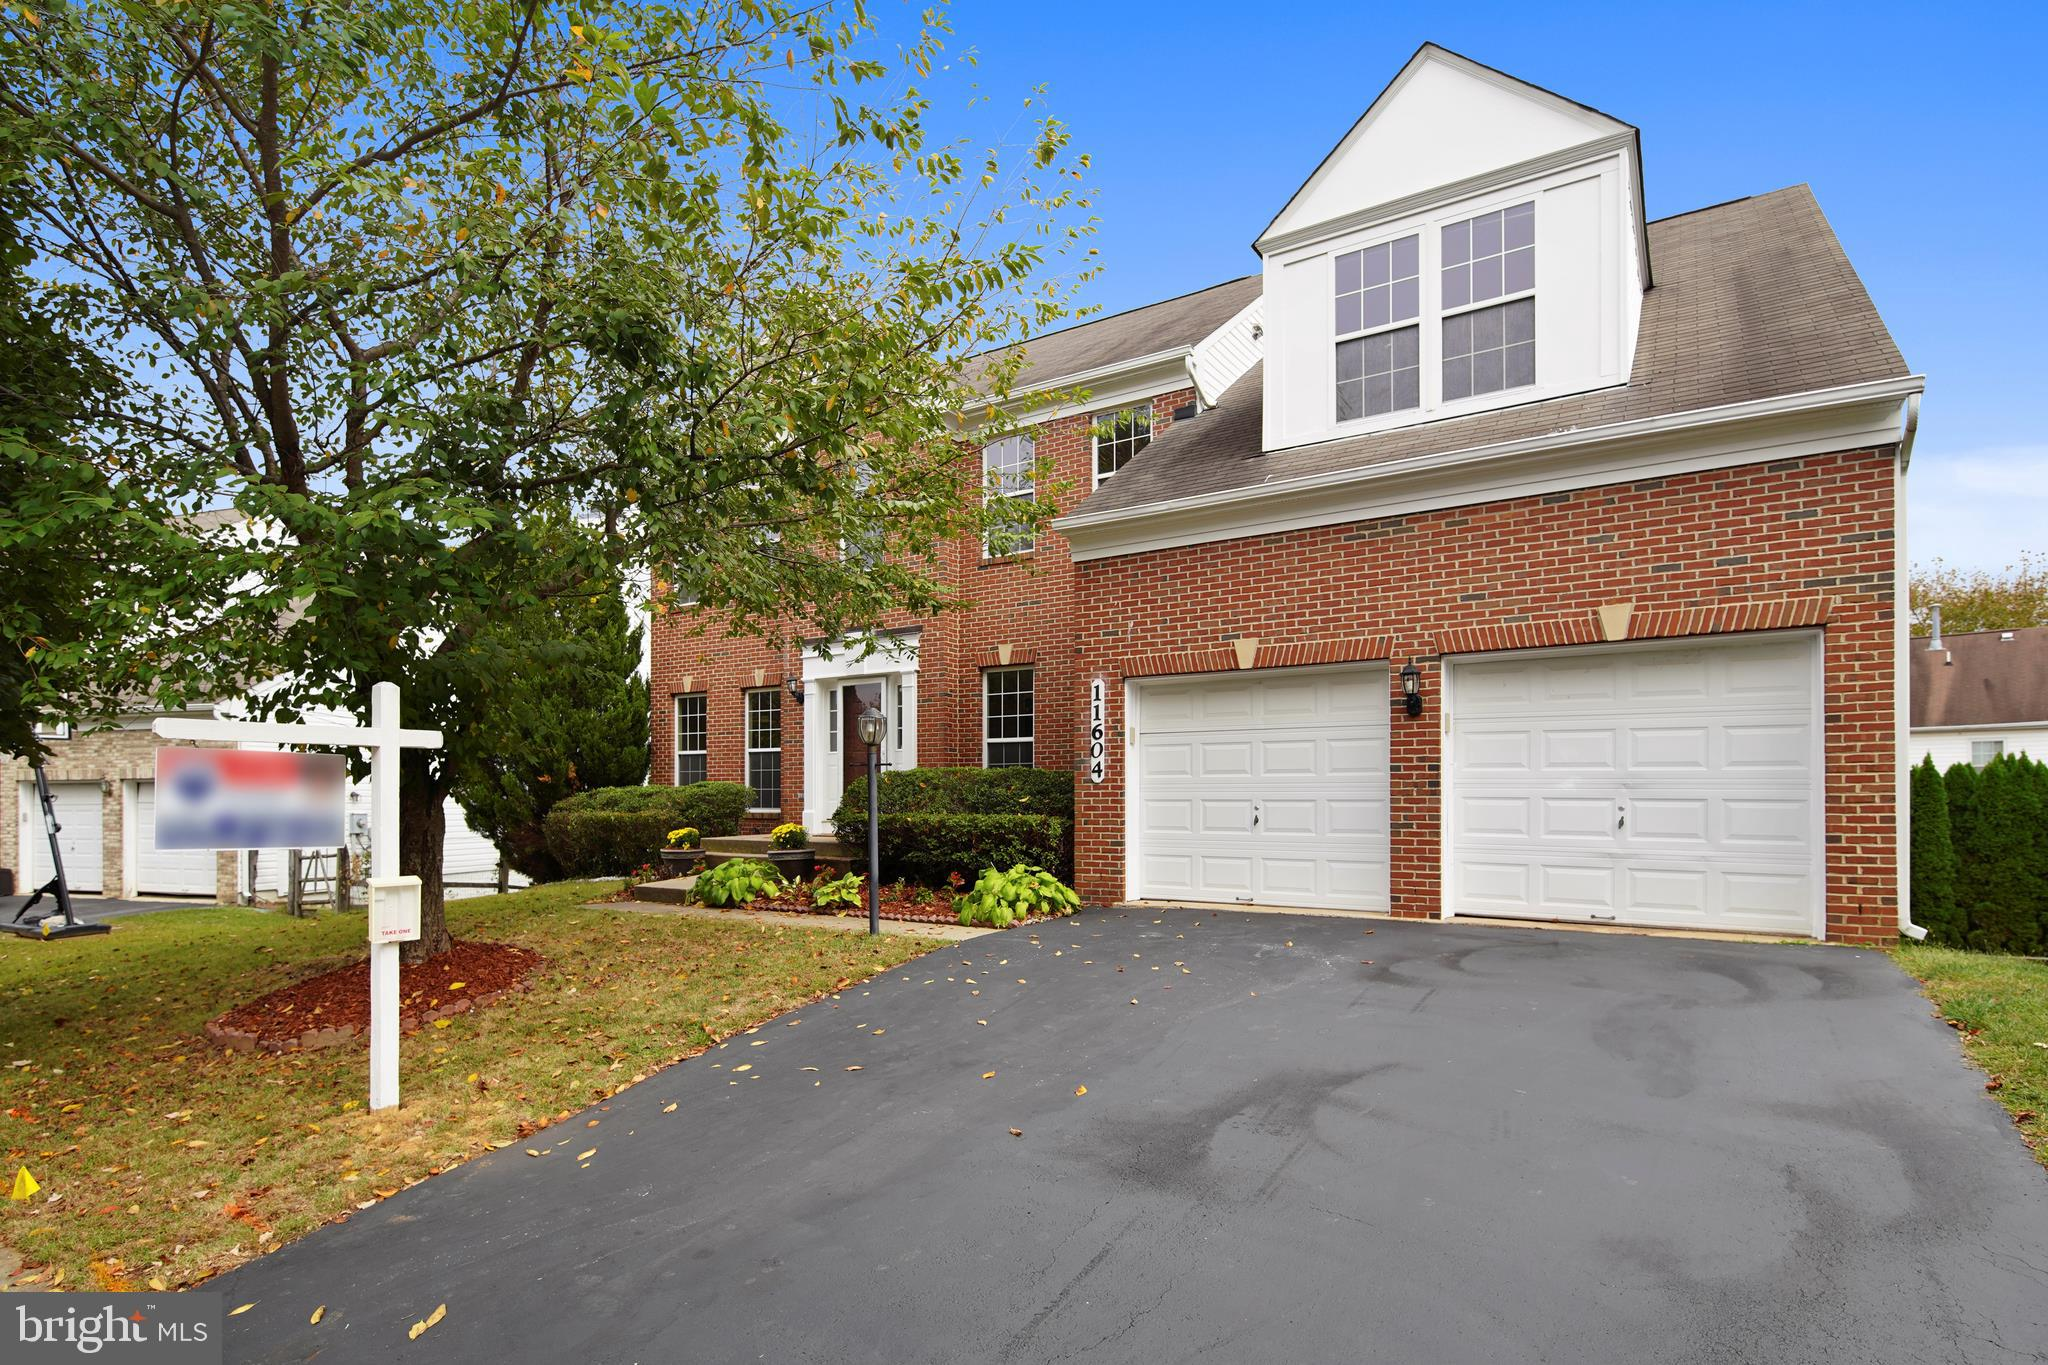 11604 TALL PINES DRIVE, GERMANTOWN, MD 20876